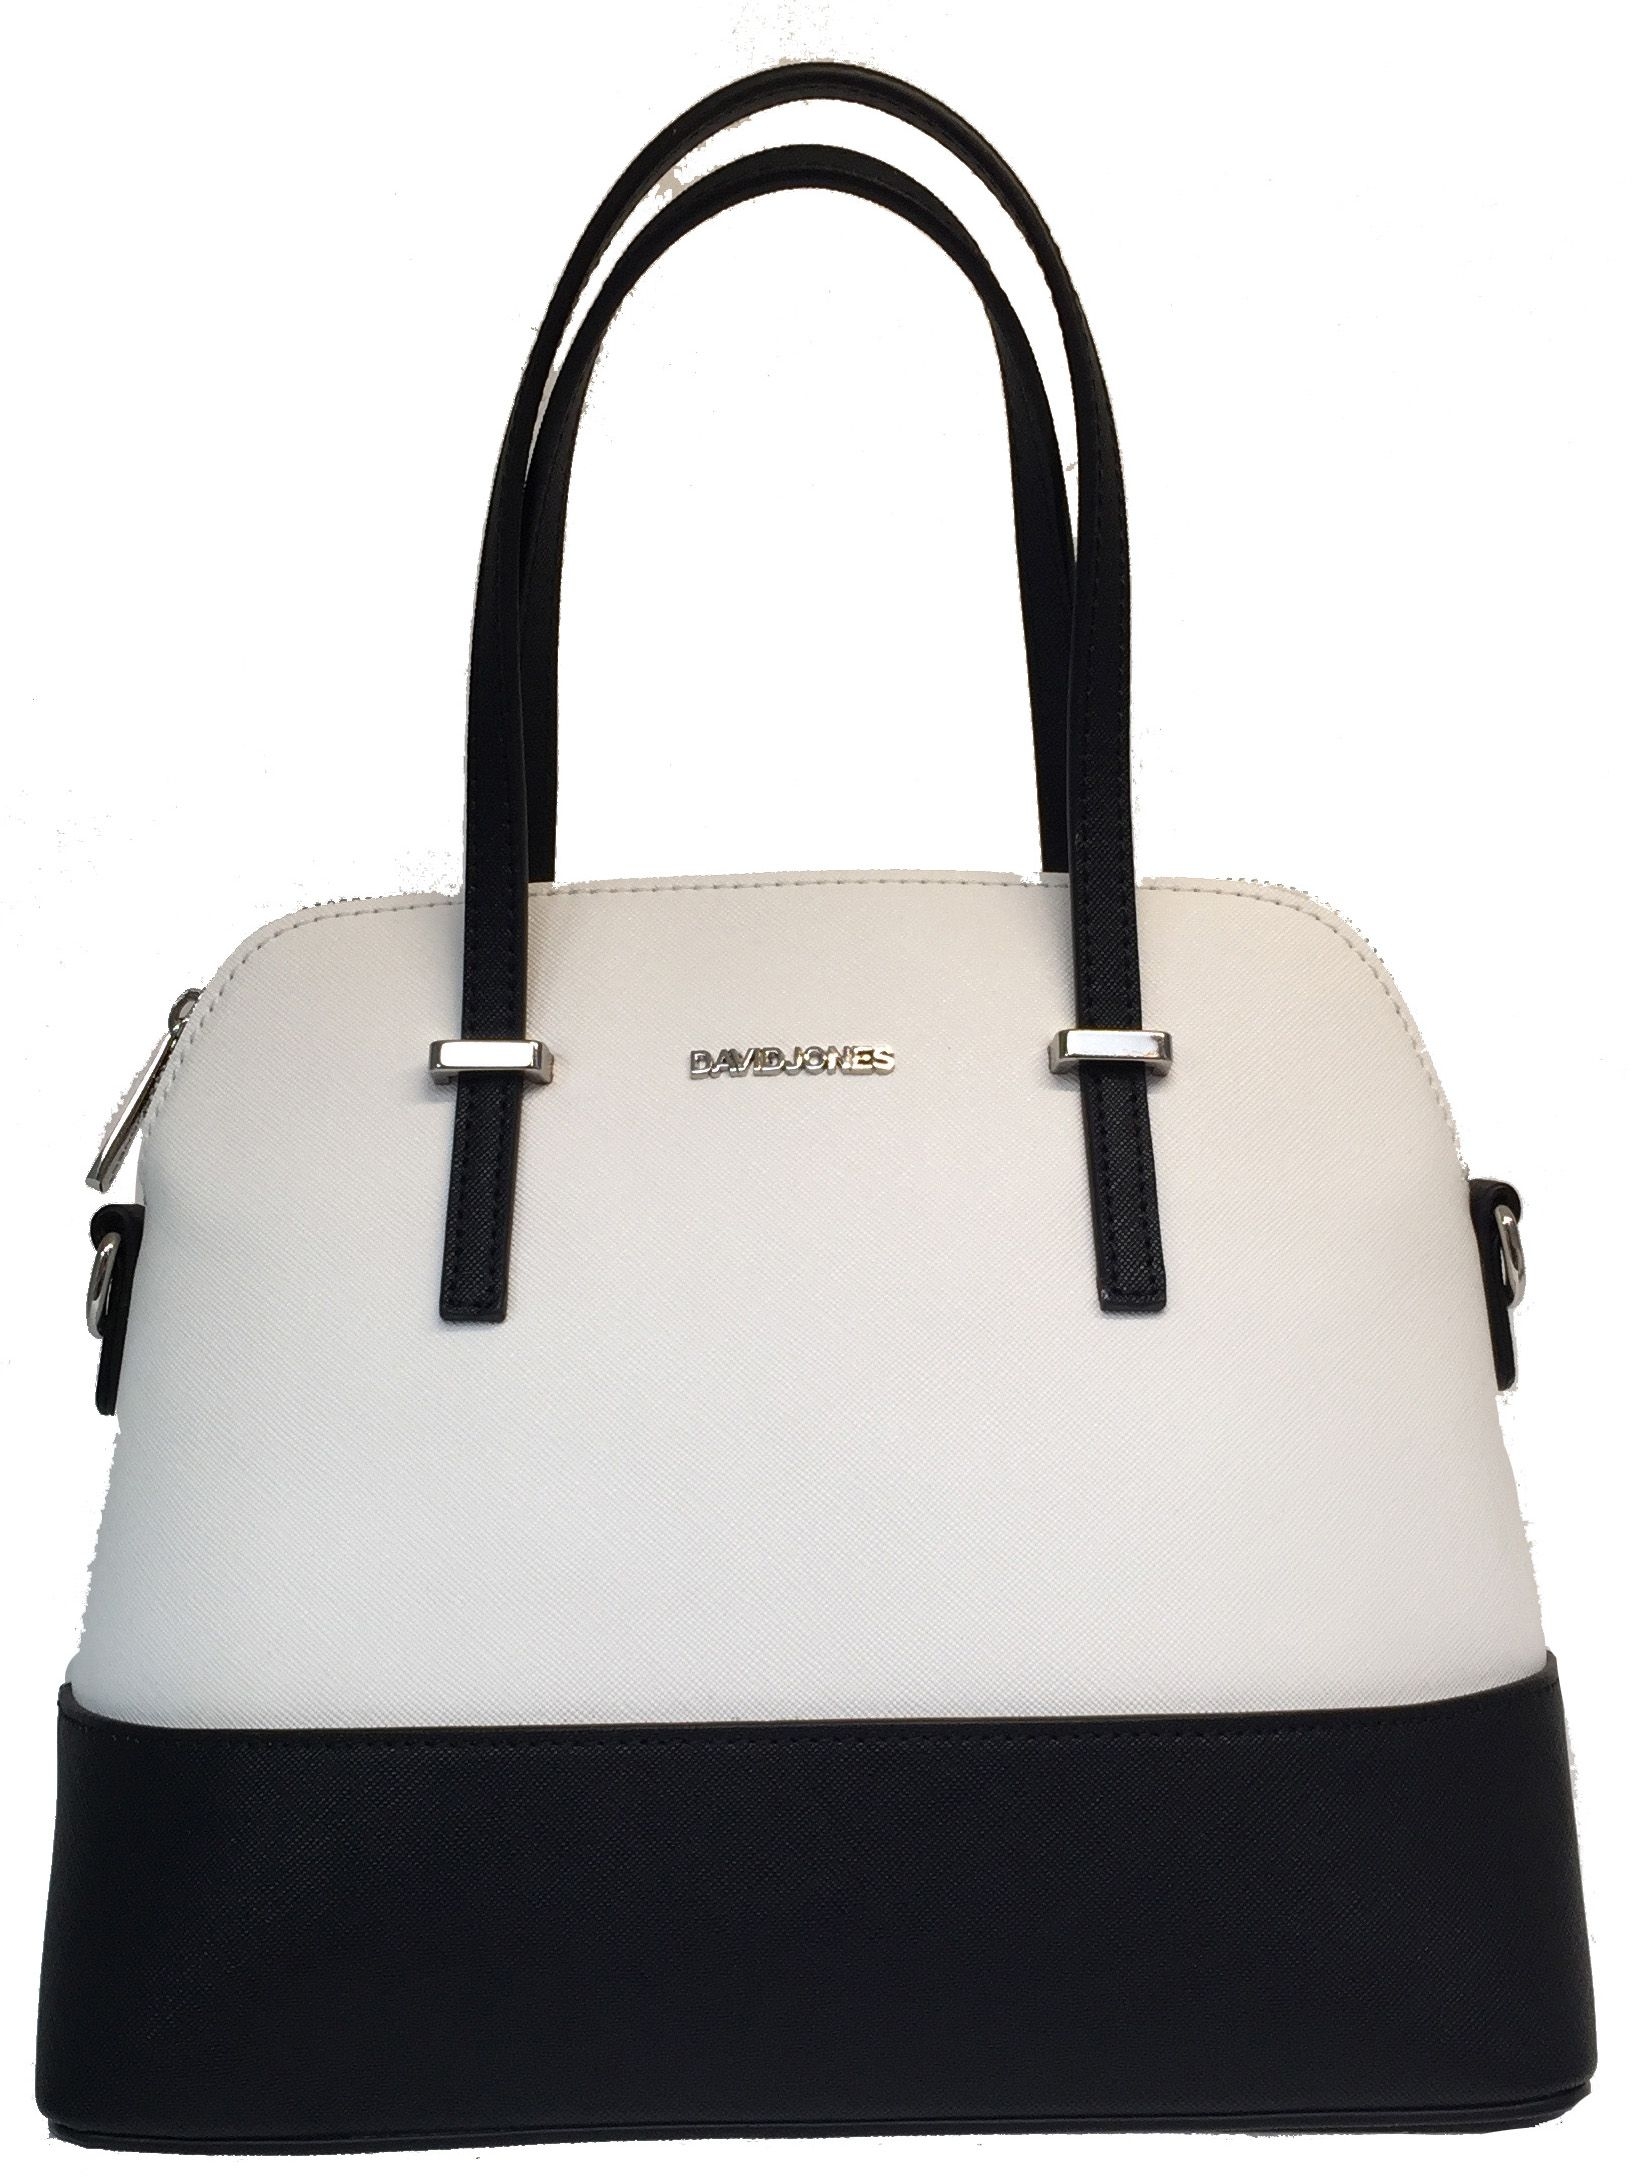 David Jones Black White Bag